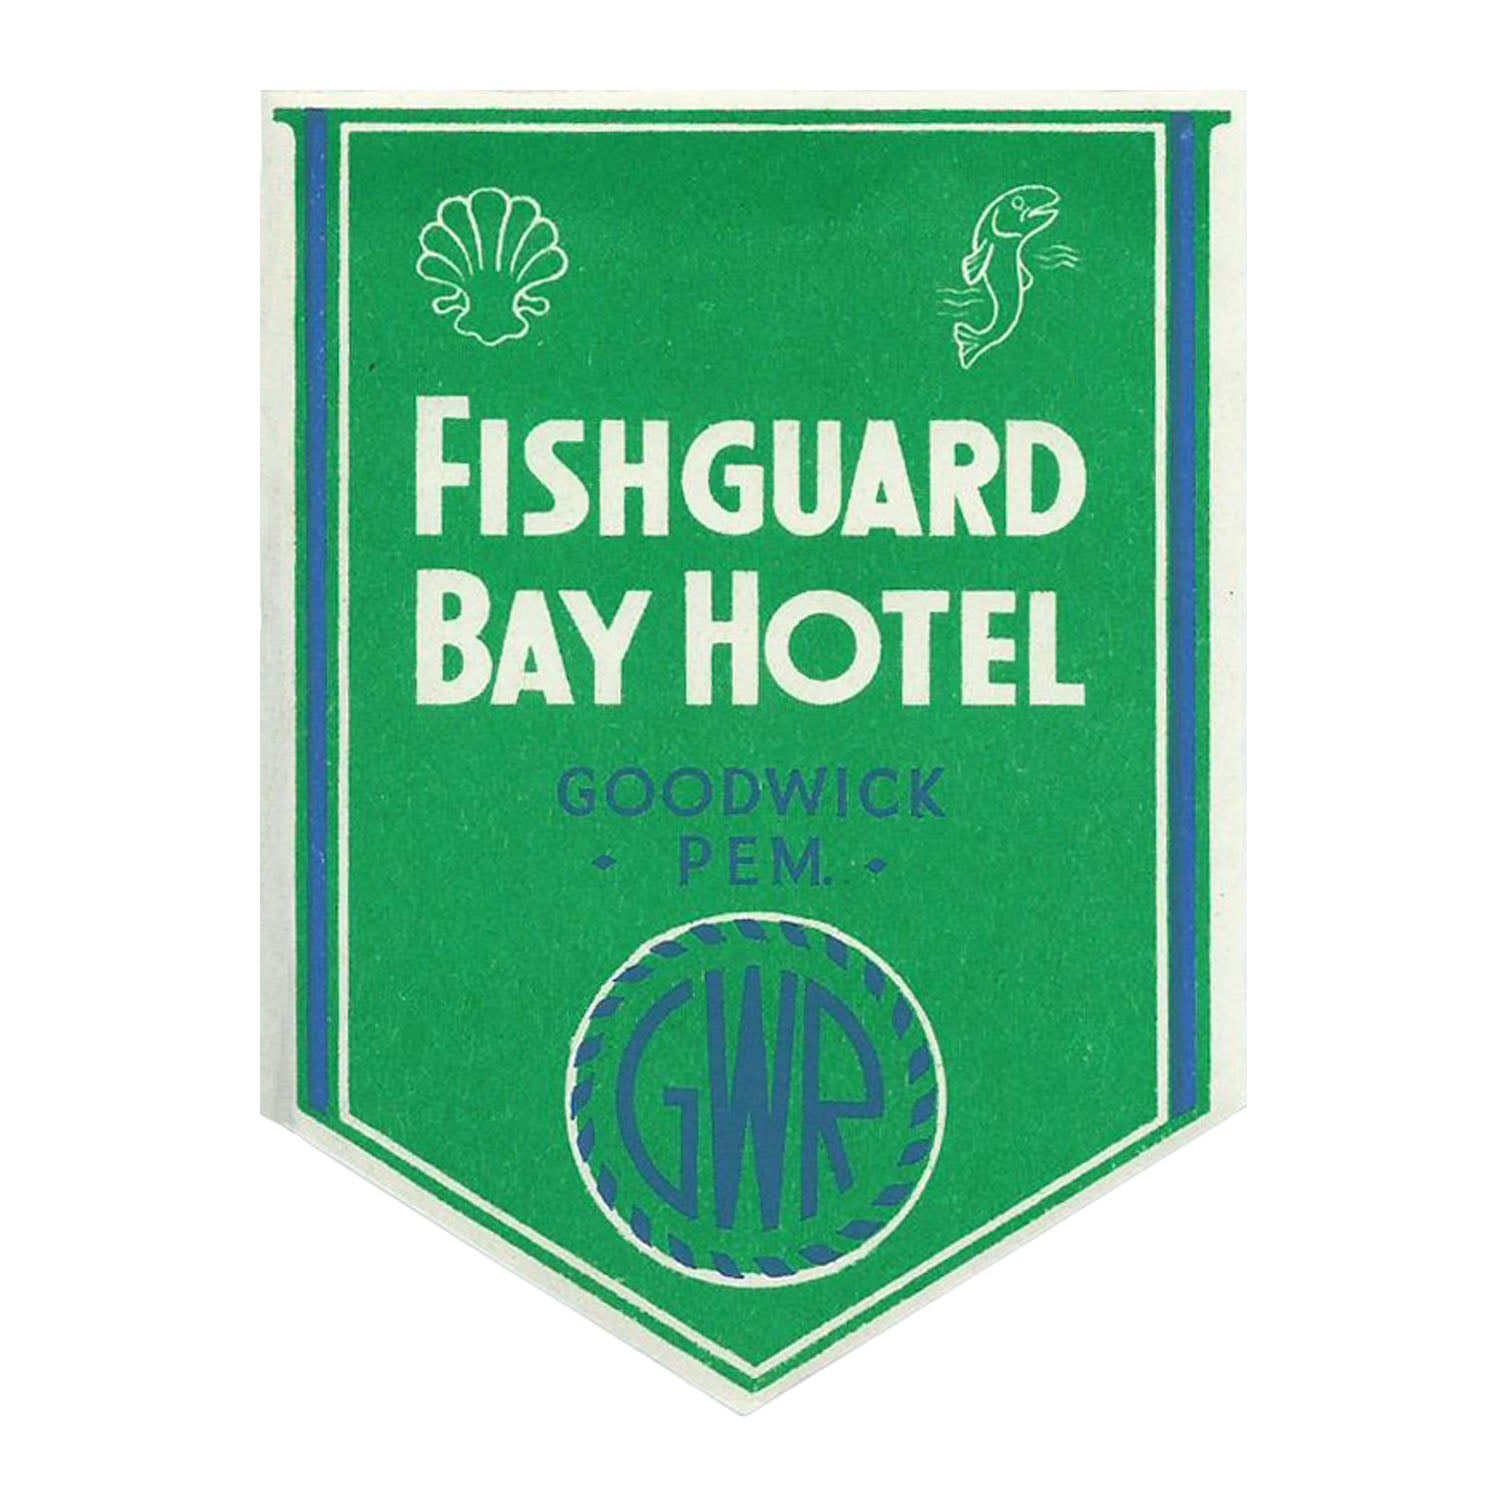 Fishguard Bay Hotel Luggage label, GWR